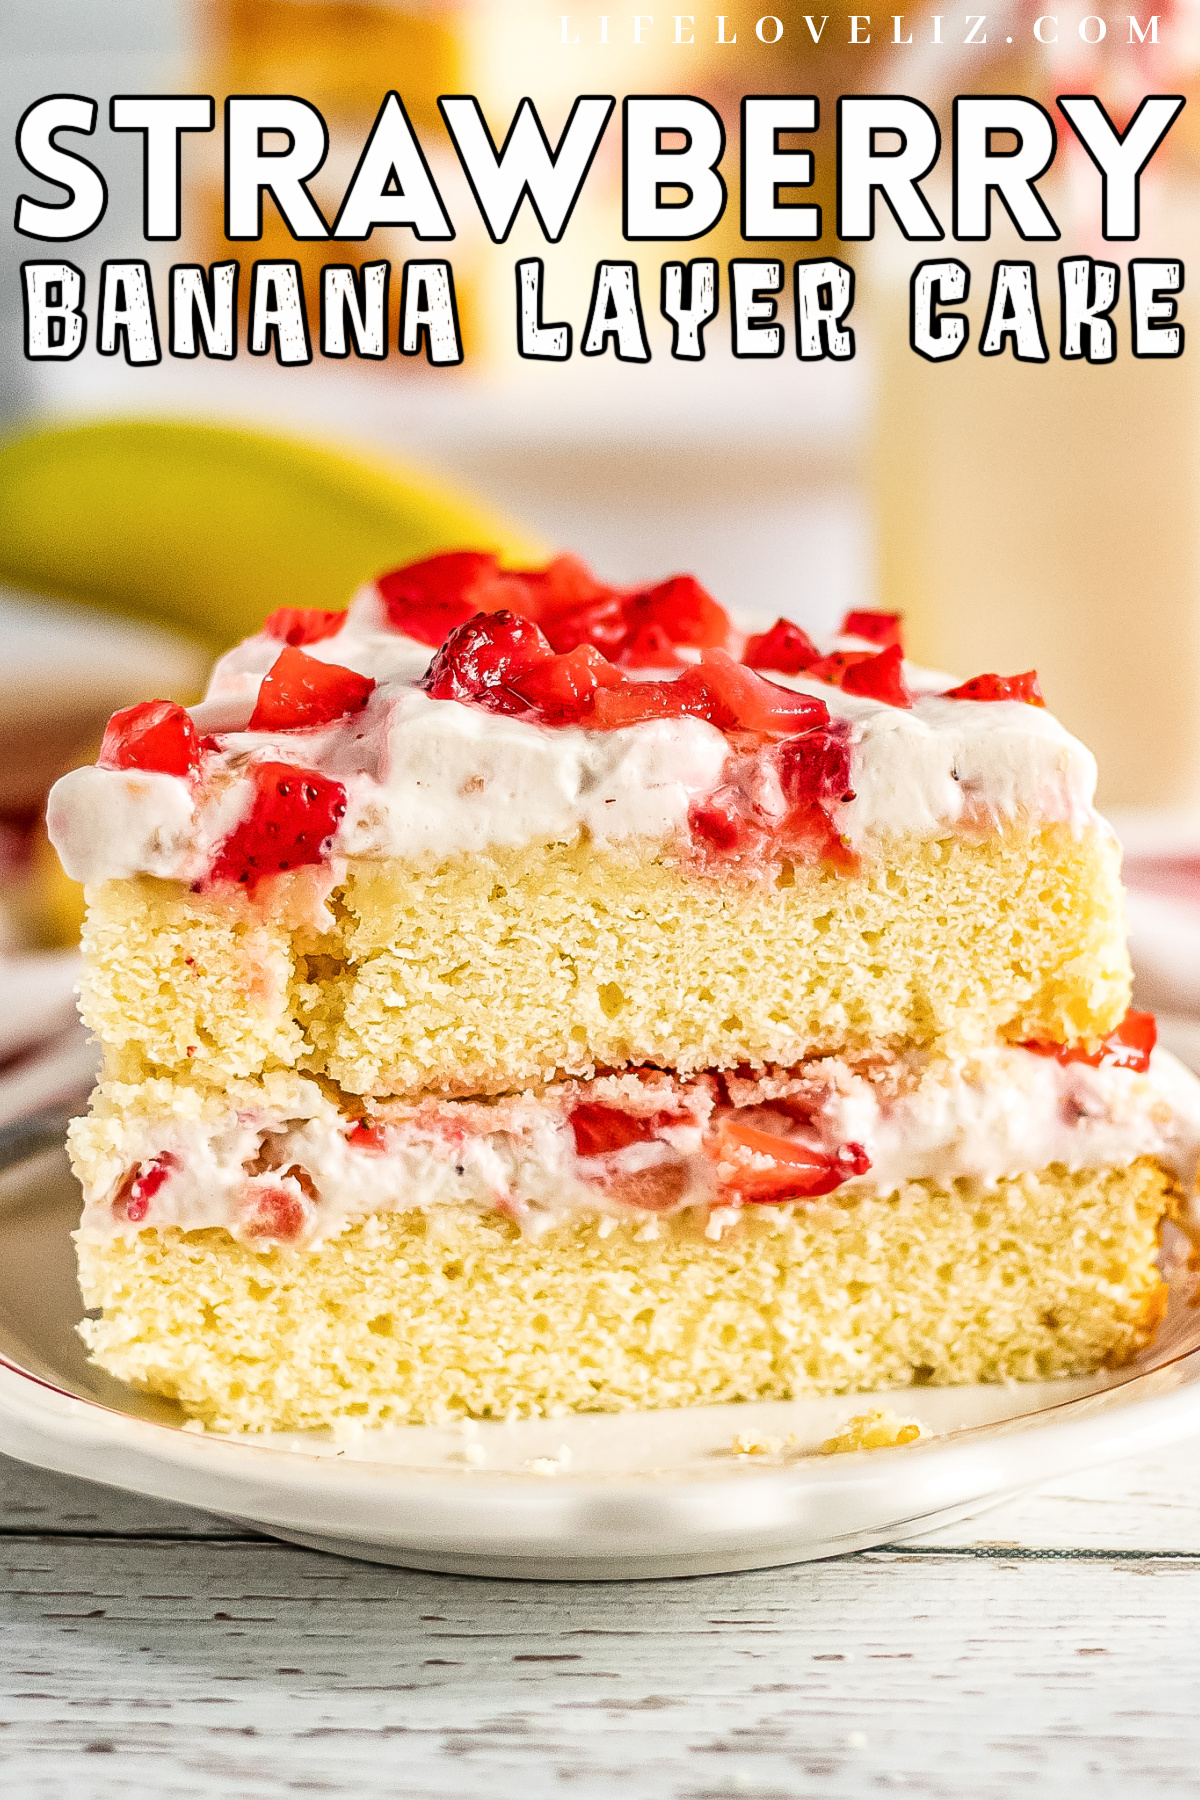 An easy recipe for a strawberry banana layer cake with layers of creamy whipped cream frosting made with fresh bananas and strawberries.